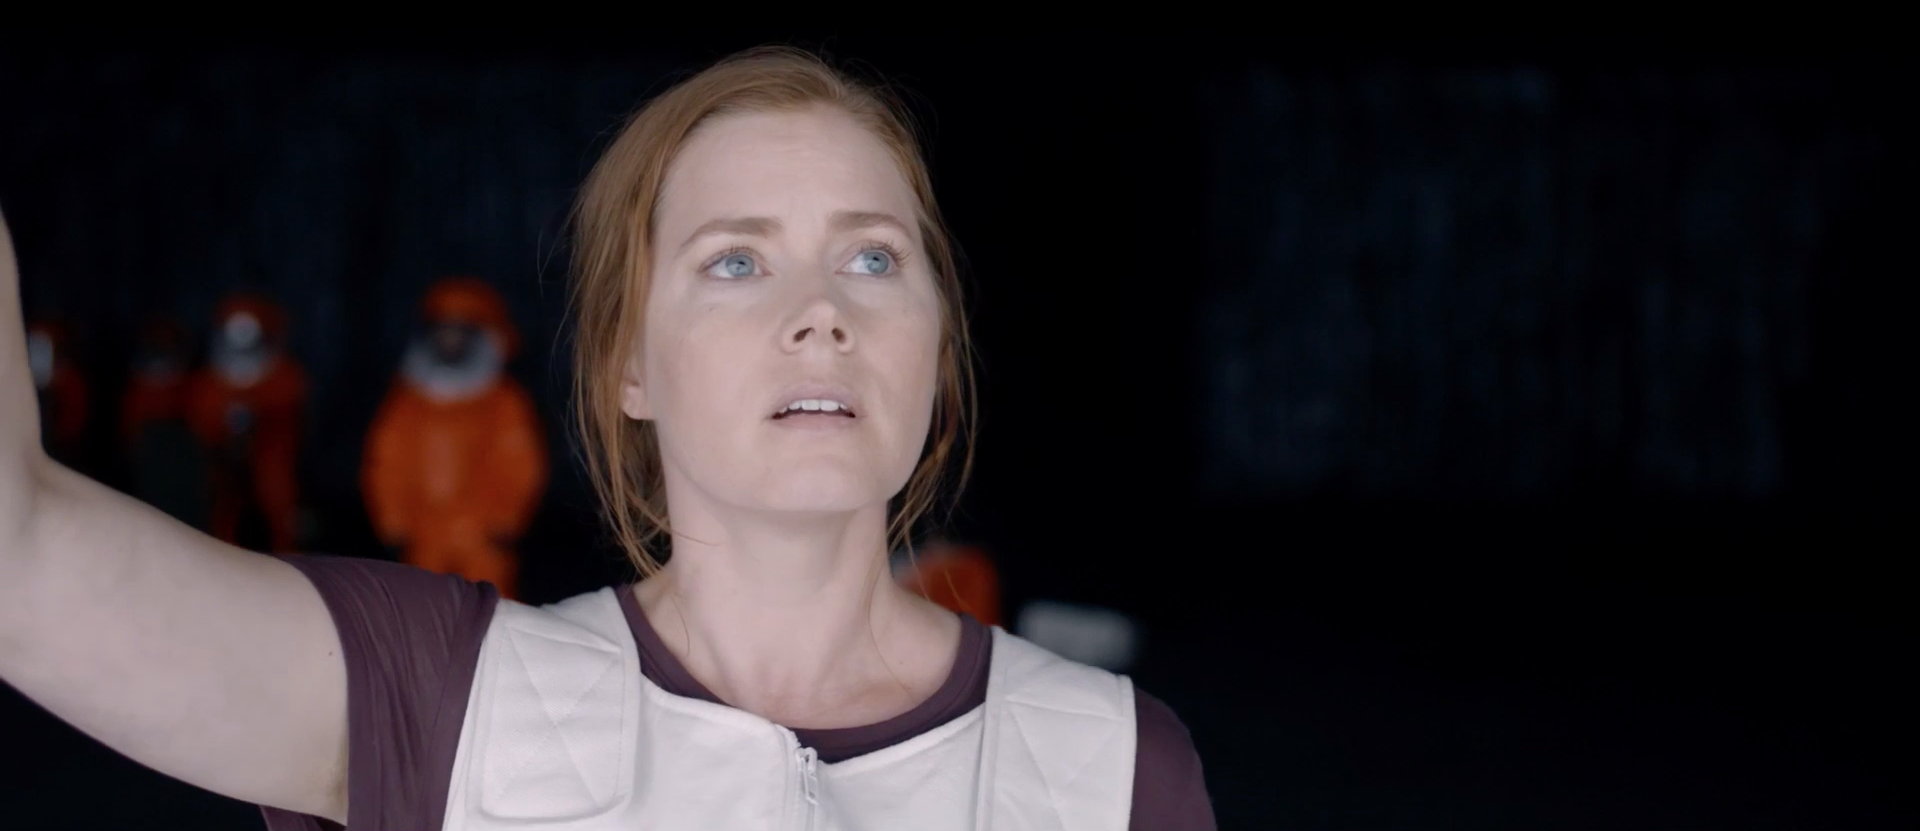 Prepare for a shocking first encounter with 'Arrival' trailer